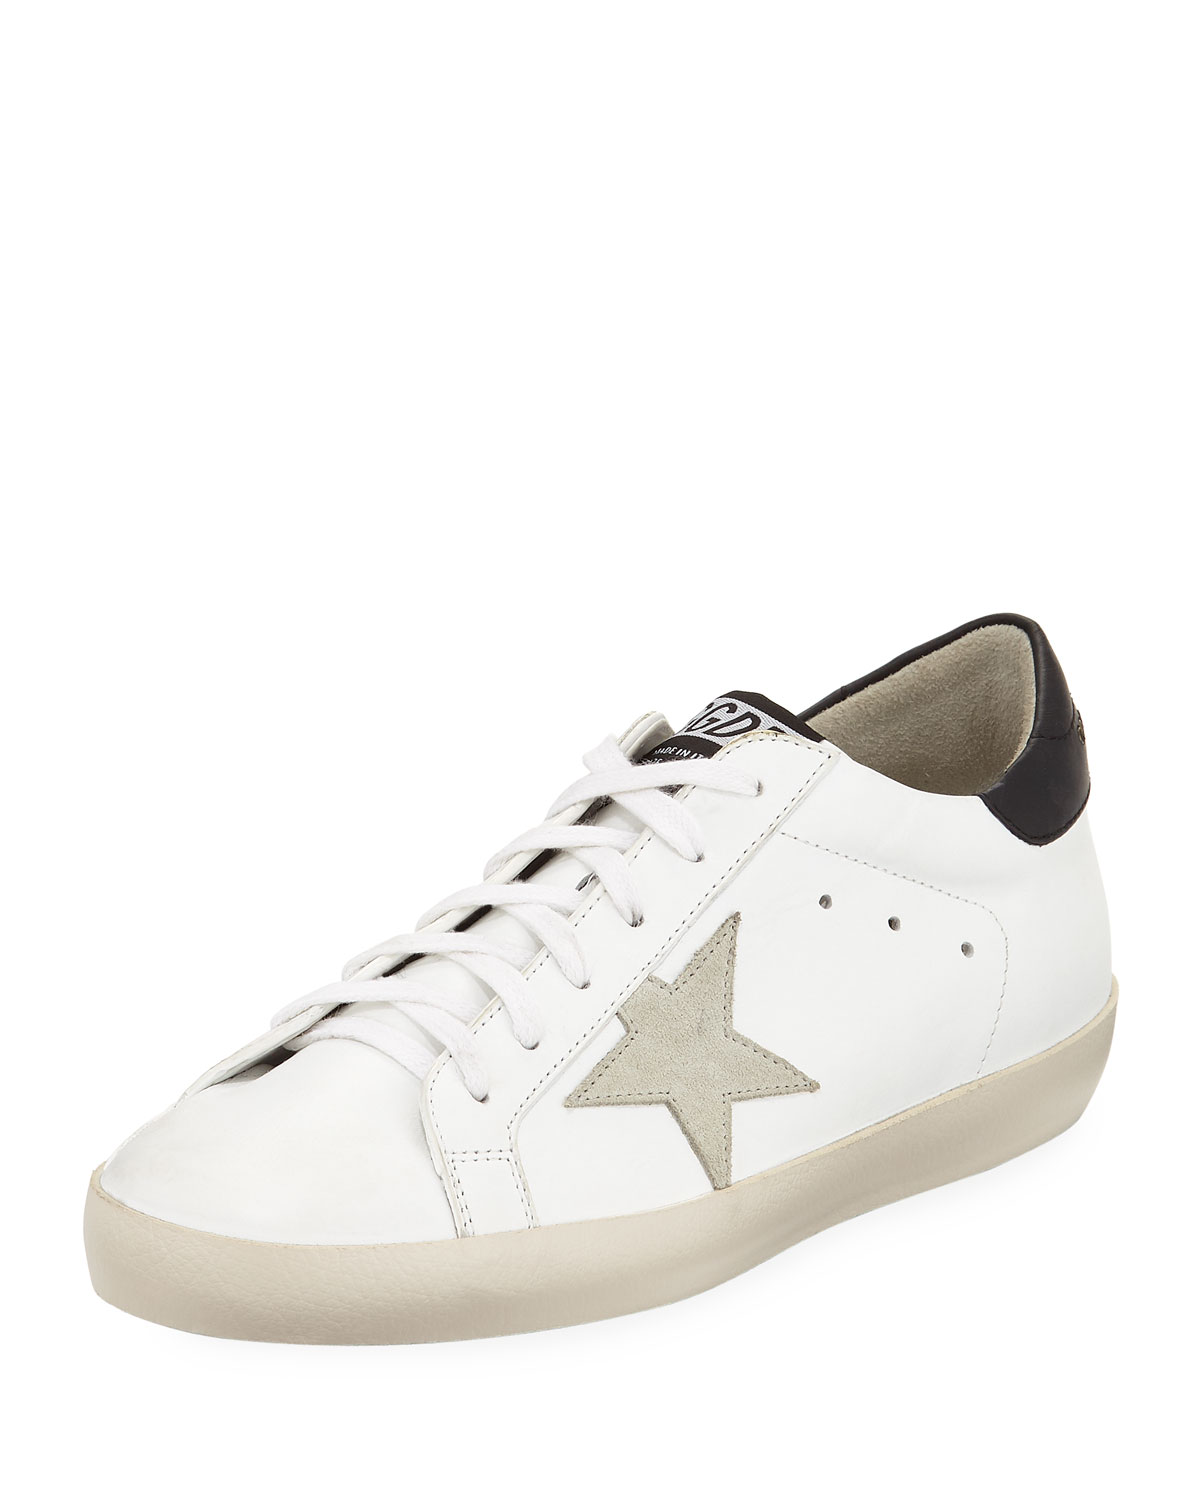 Golden Goose Superstar Leather Low-Top Platform Sneakers with Suede ... beca3308d30e